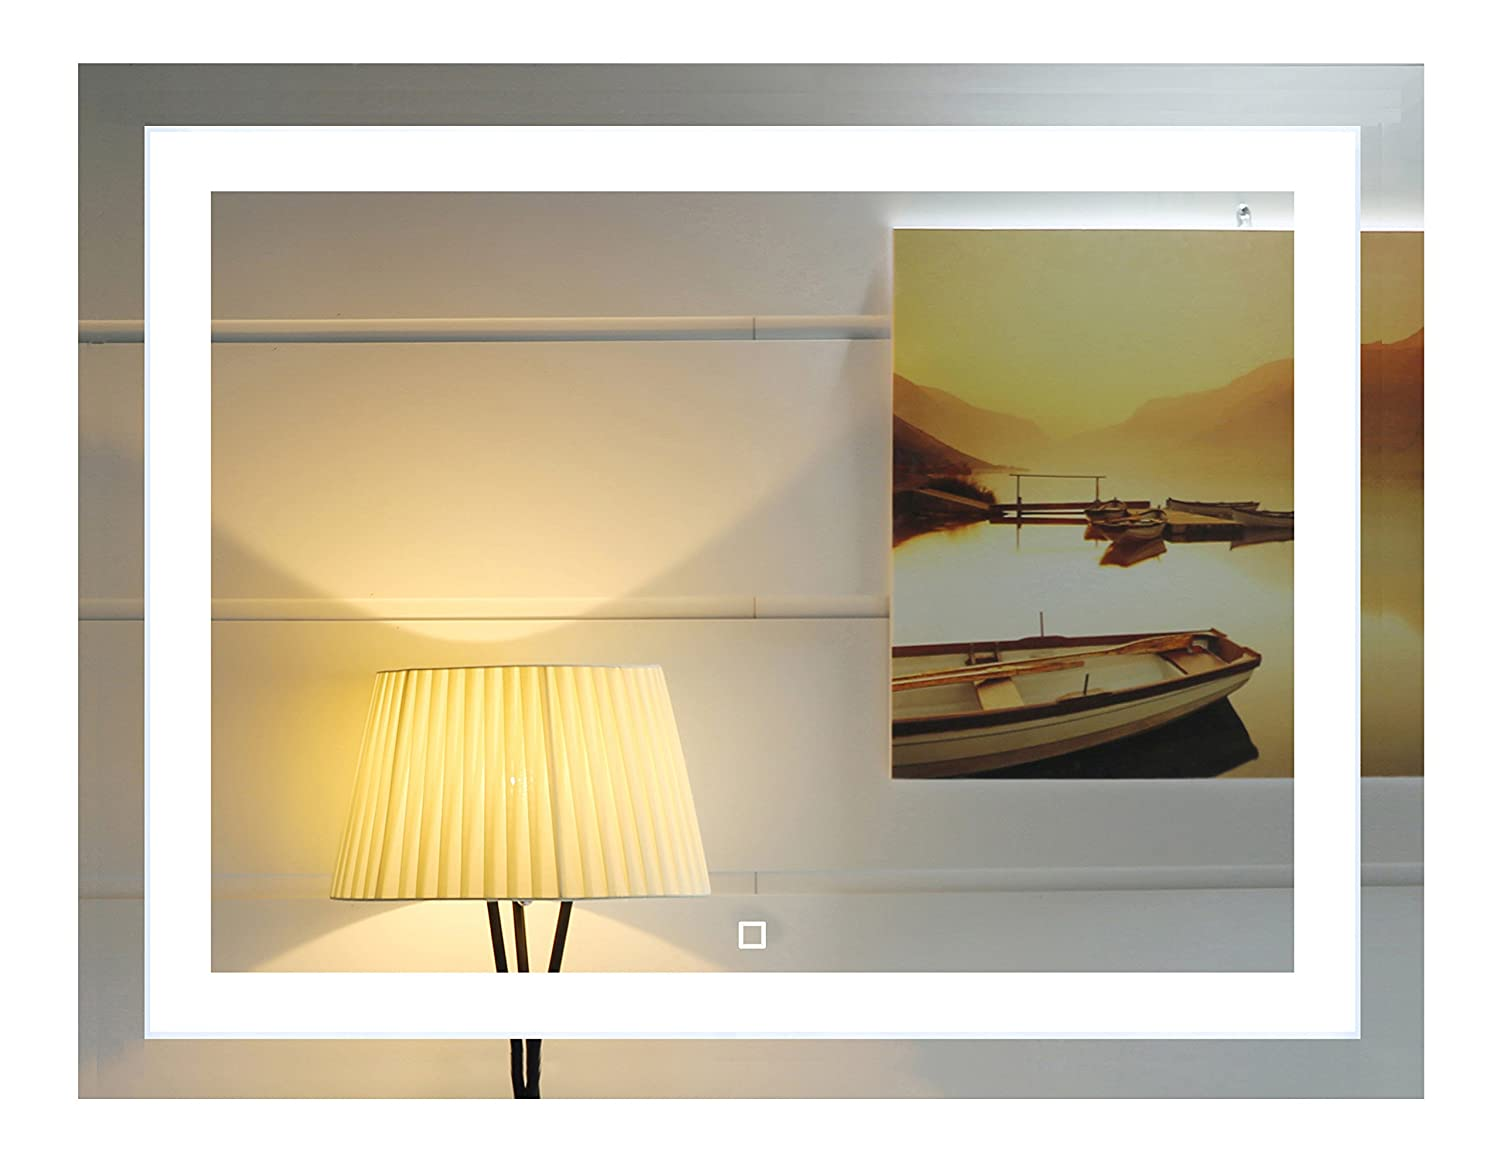 Amazon.com: 36x28 Inch Wall Mounted Led Lighted Bathroom Mirror With ...